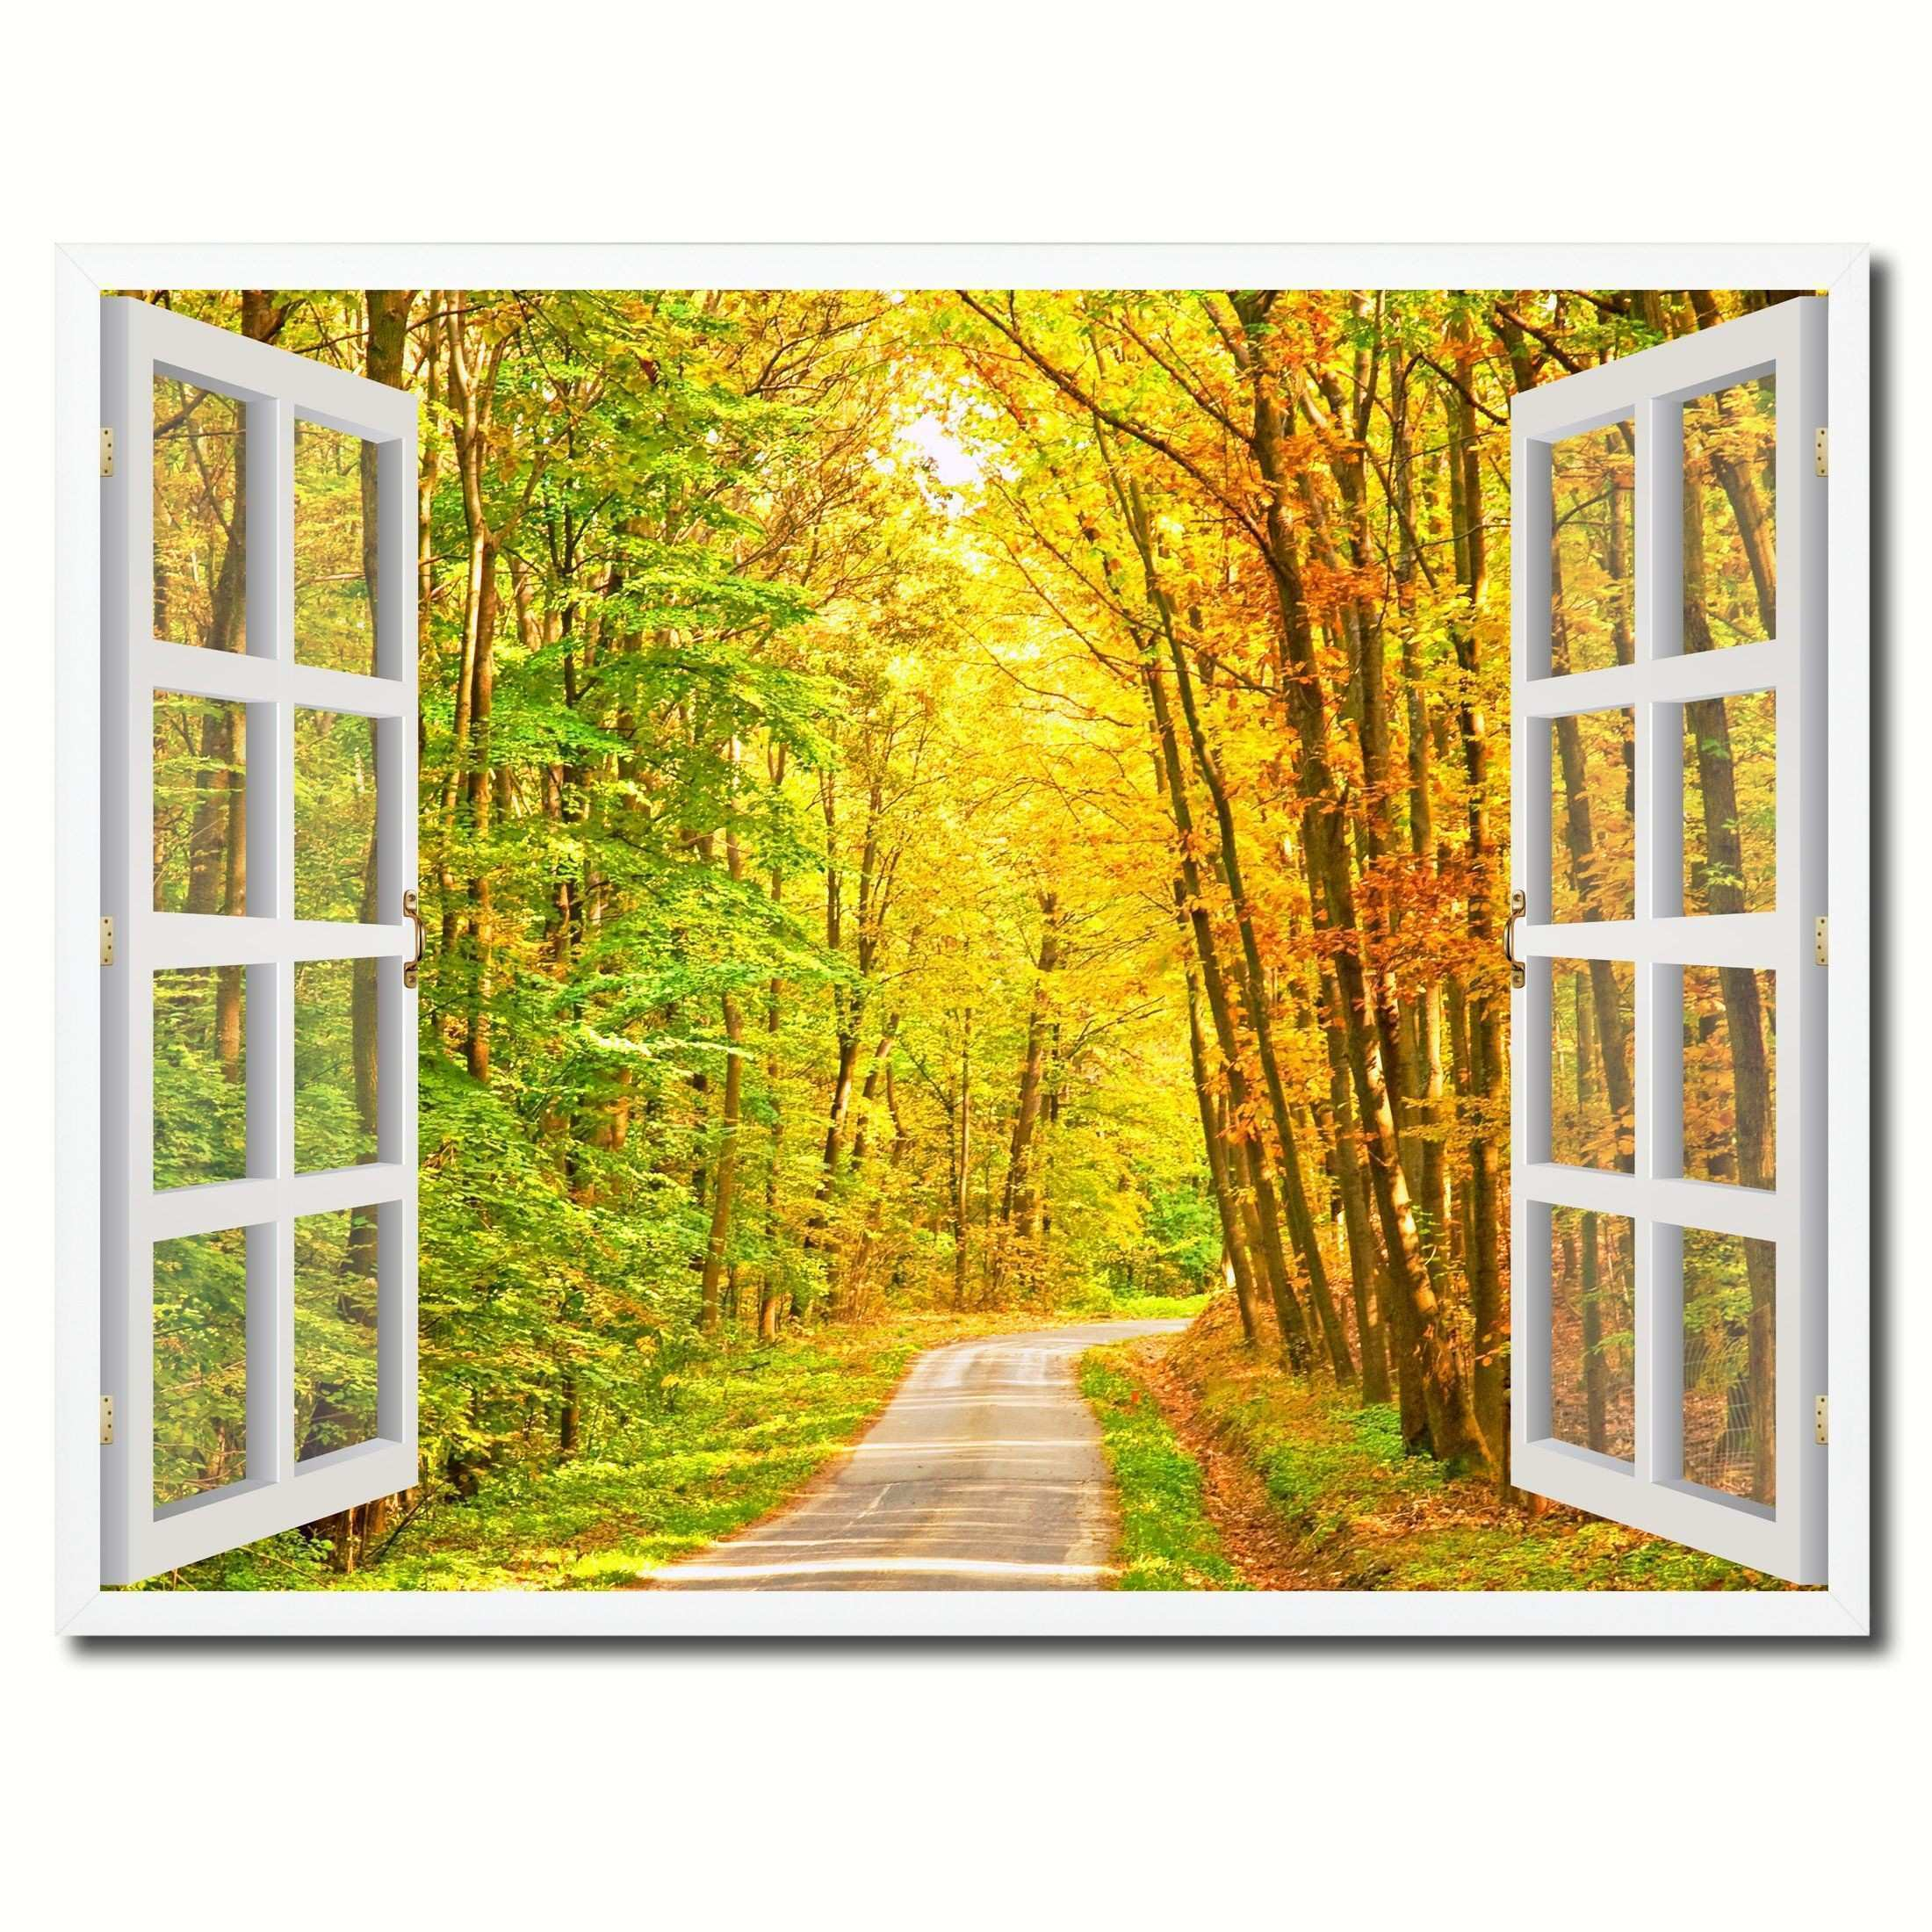 Pathway Autumn Park Fall Forest Picture French Window Framed Canvas